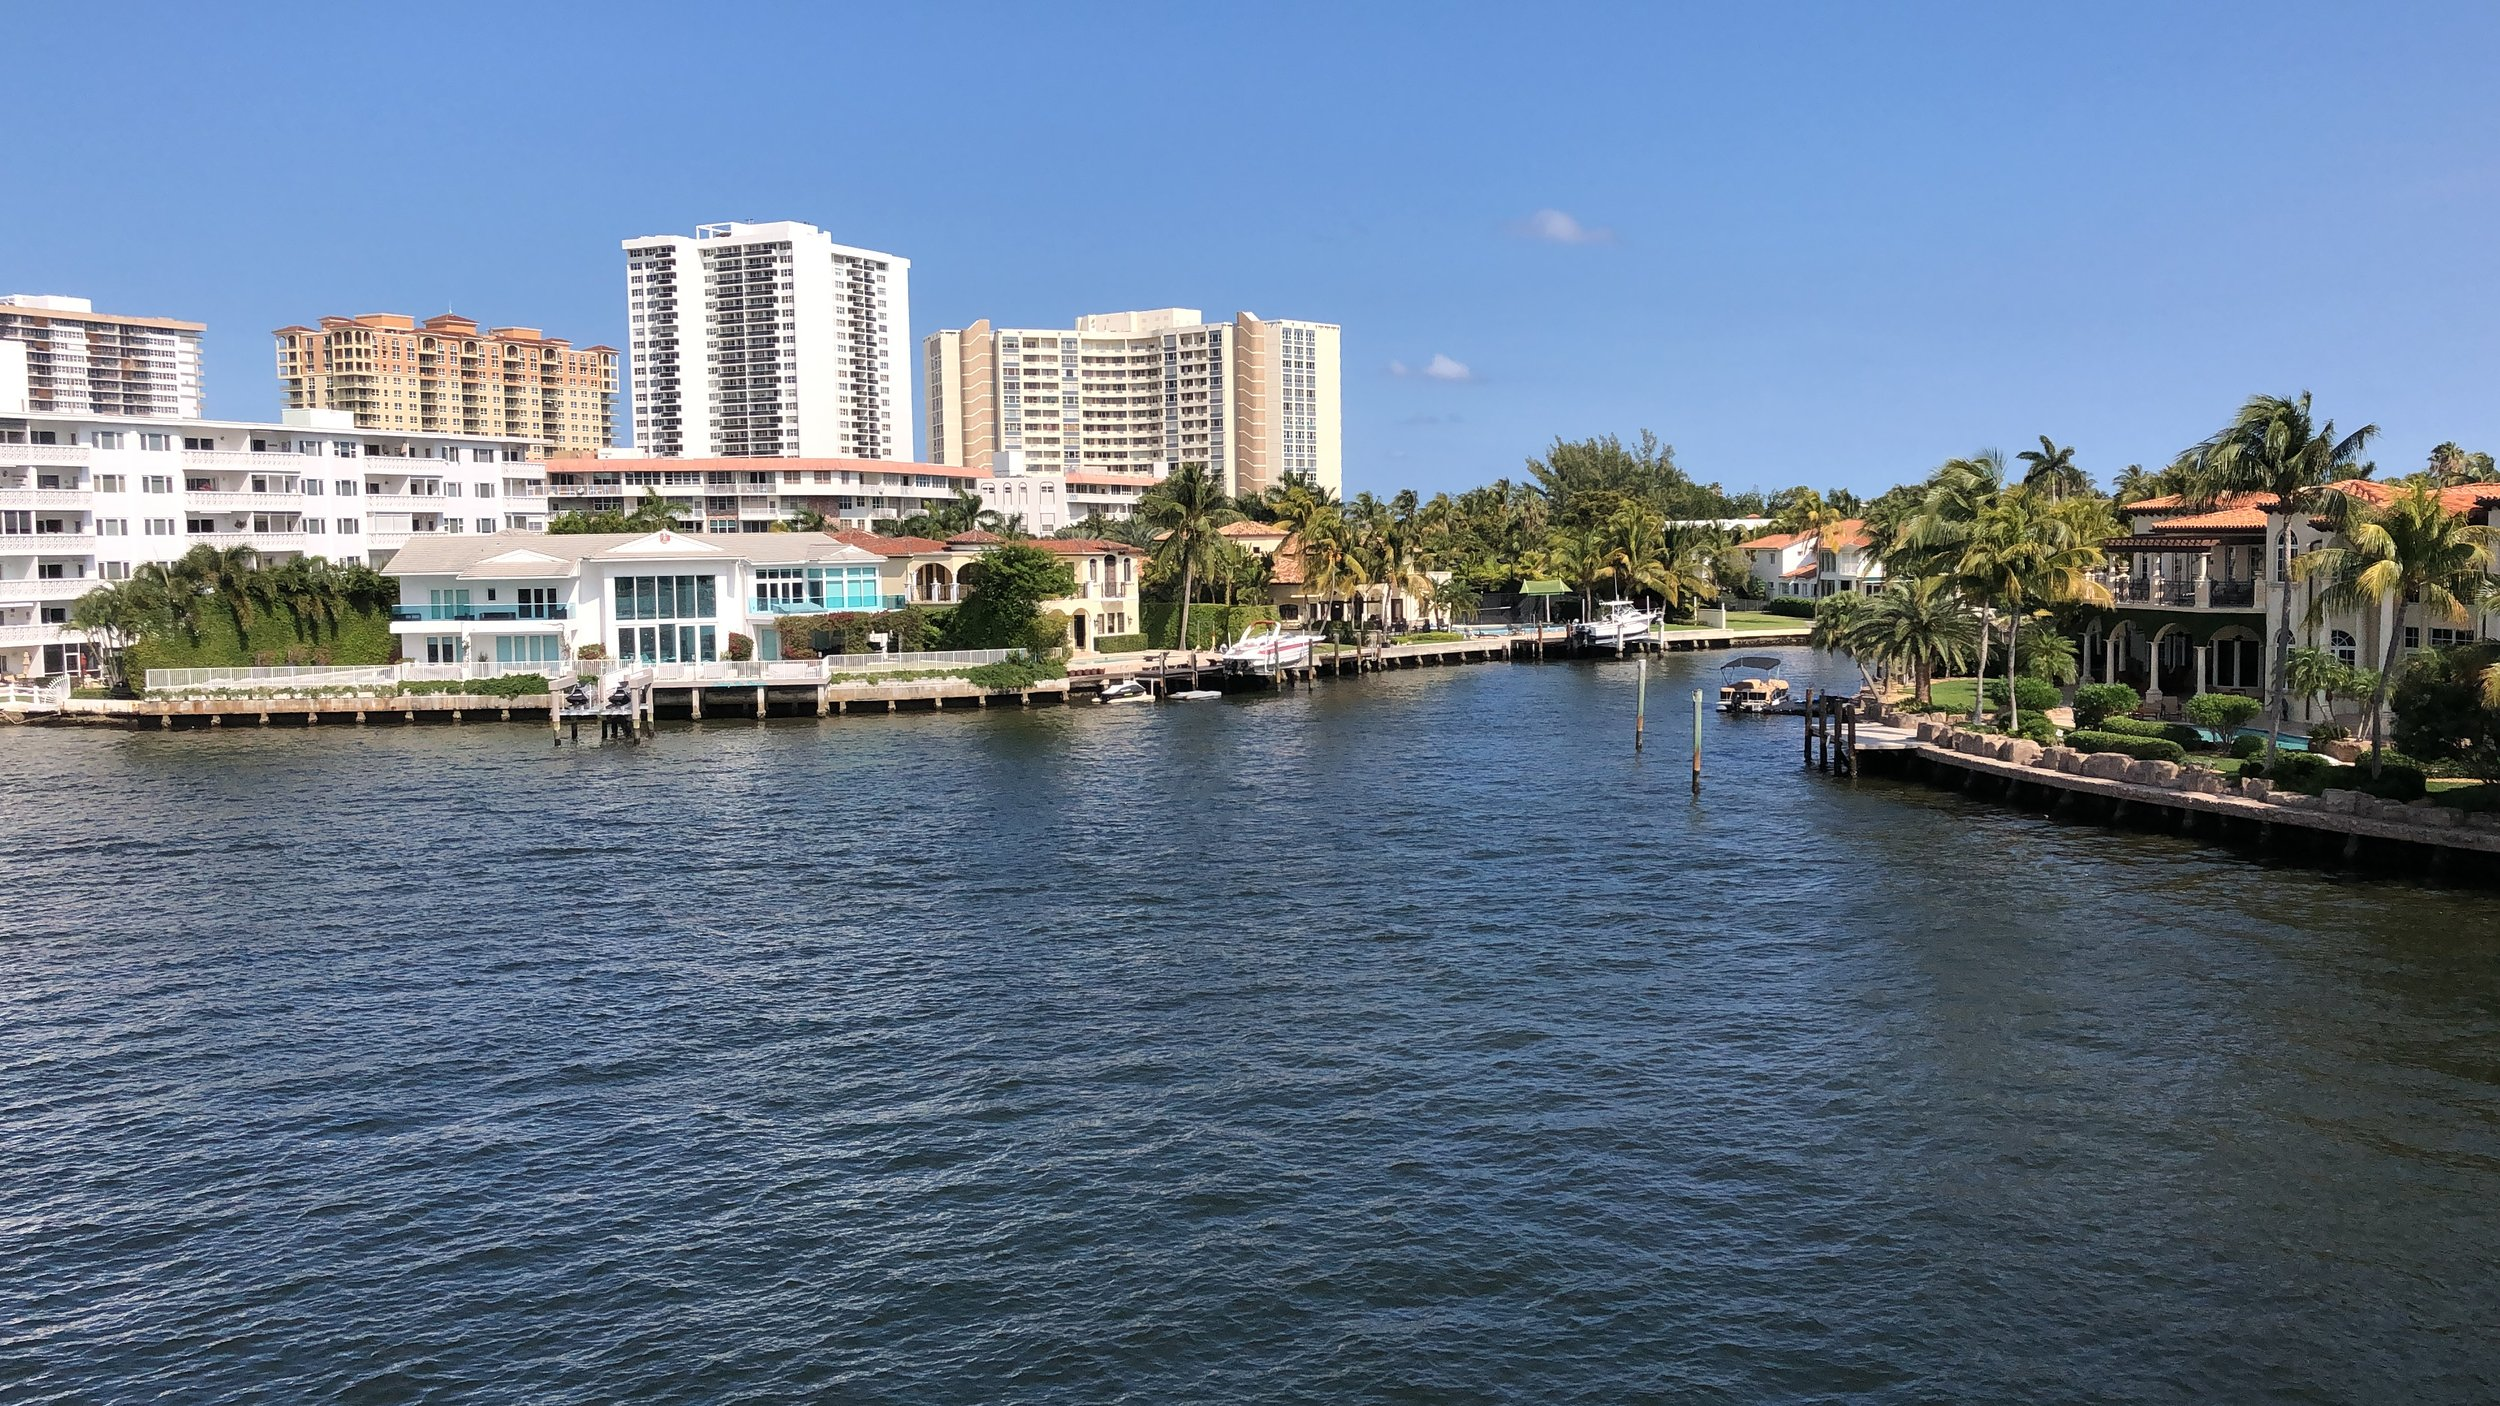 Picturesque Fort Lauderdale, Florida, as seen from cruise ship on the intracoastal February 17, 2019